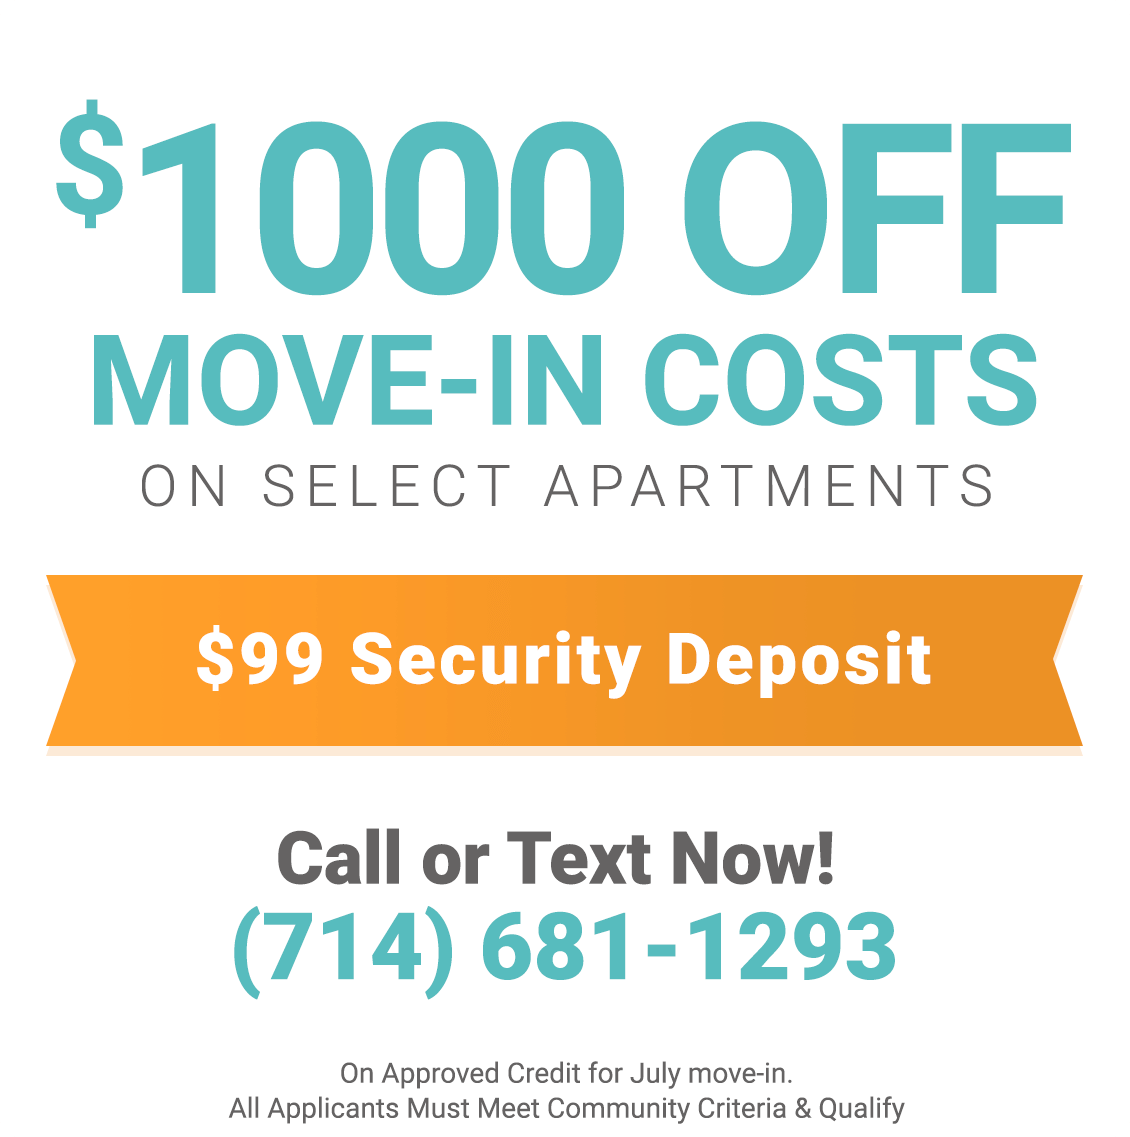 $1000 Off Move In Costs on Select Apartments & $99 Security Deposit On Approved Credit for July Move In